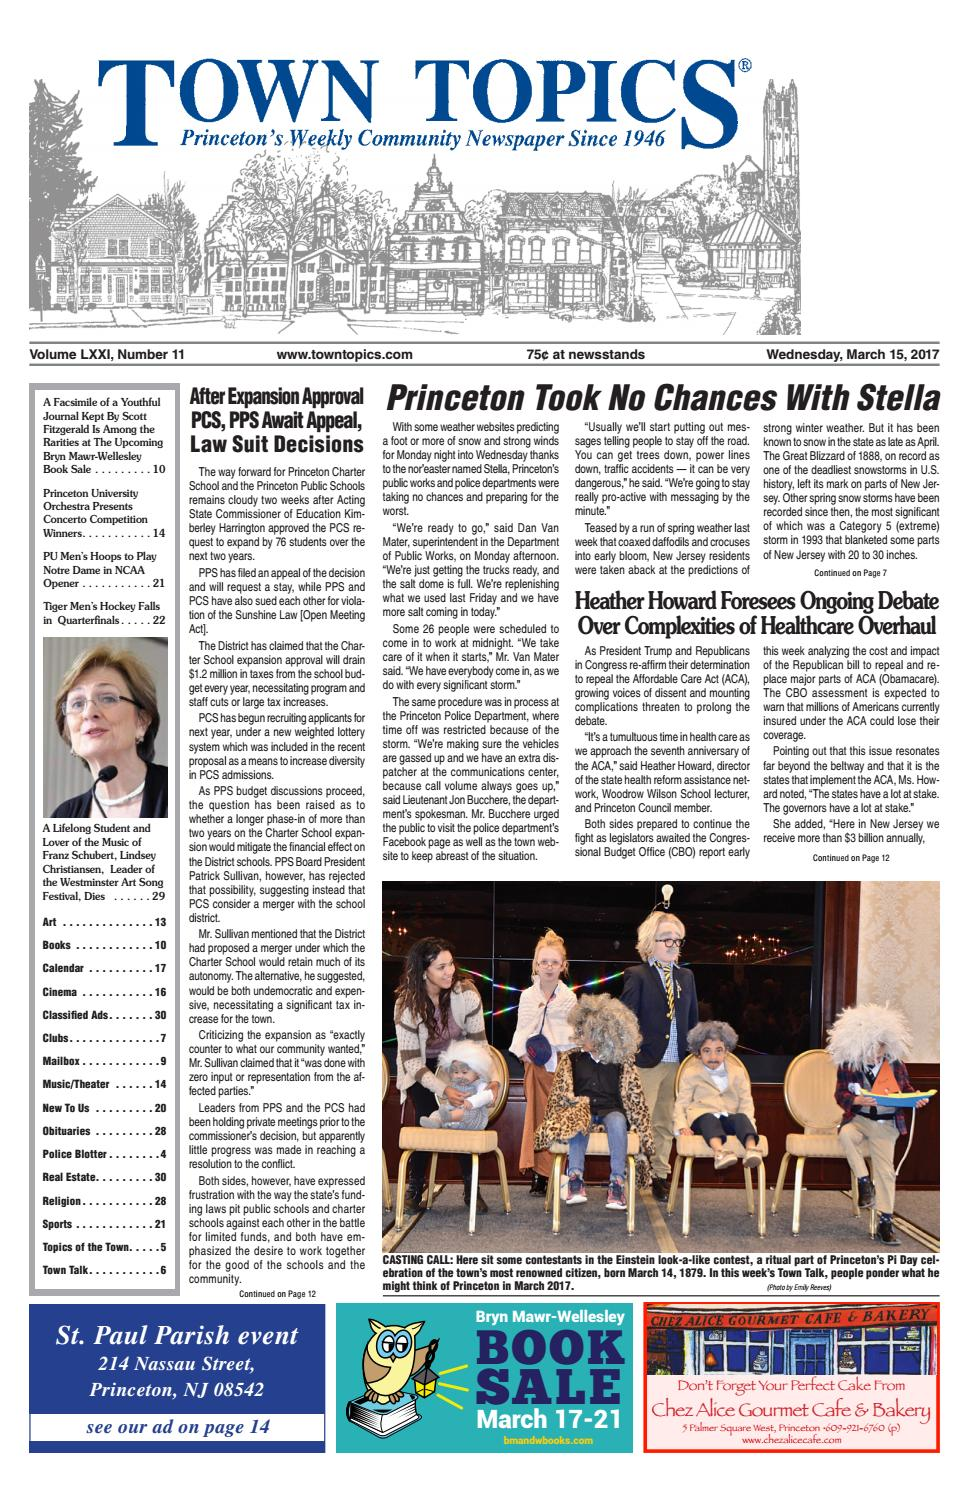 Town Topics Newspaper March 15 2017 By Witherspoon Media Group Issuu Wiring Harness Main Under Dash For Scout 800 1966 To 68